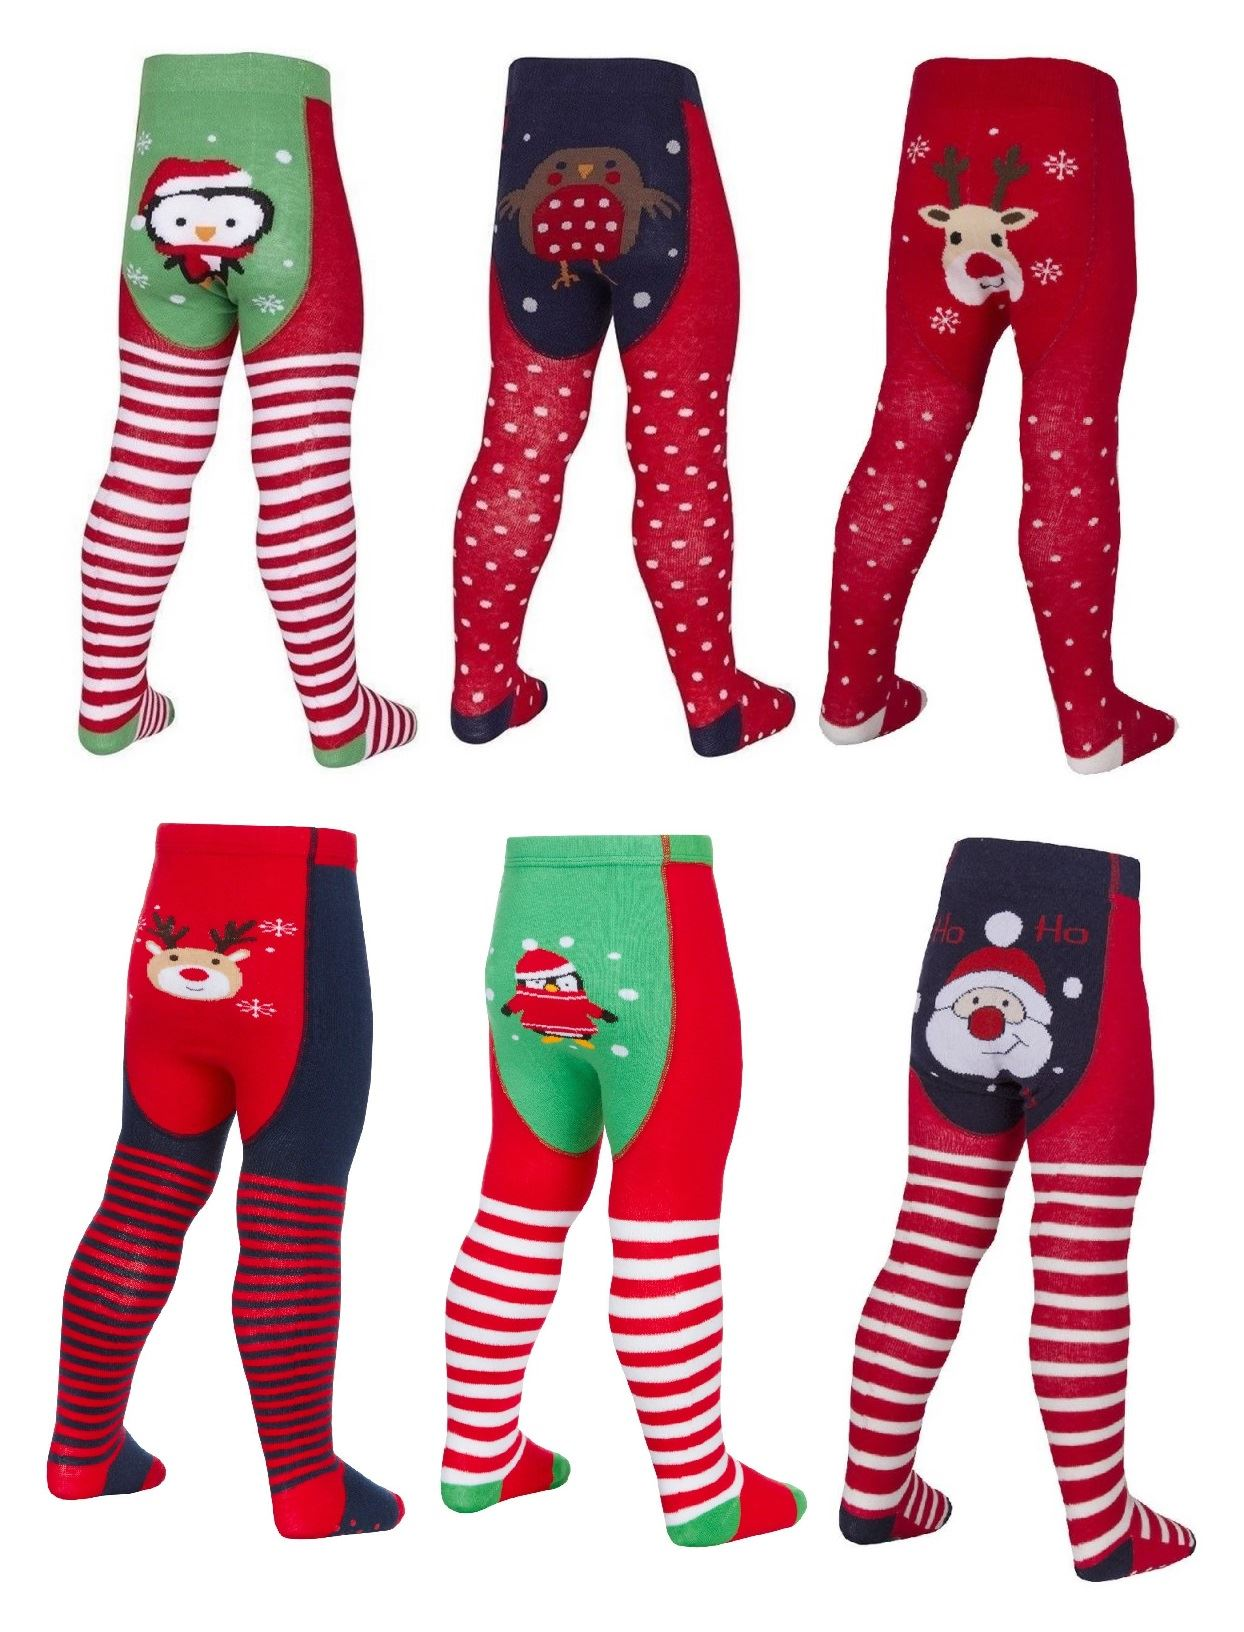 Baby Girl Green Christmas Tights with Beautiful Red Lace Bow 6 Sizes for Preemie Newborn and Toddlers up to 24 Months.